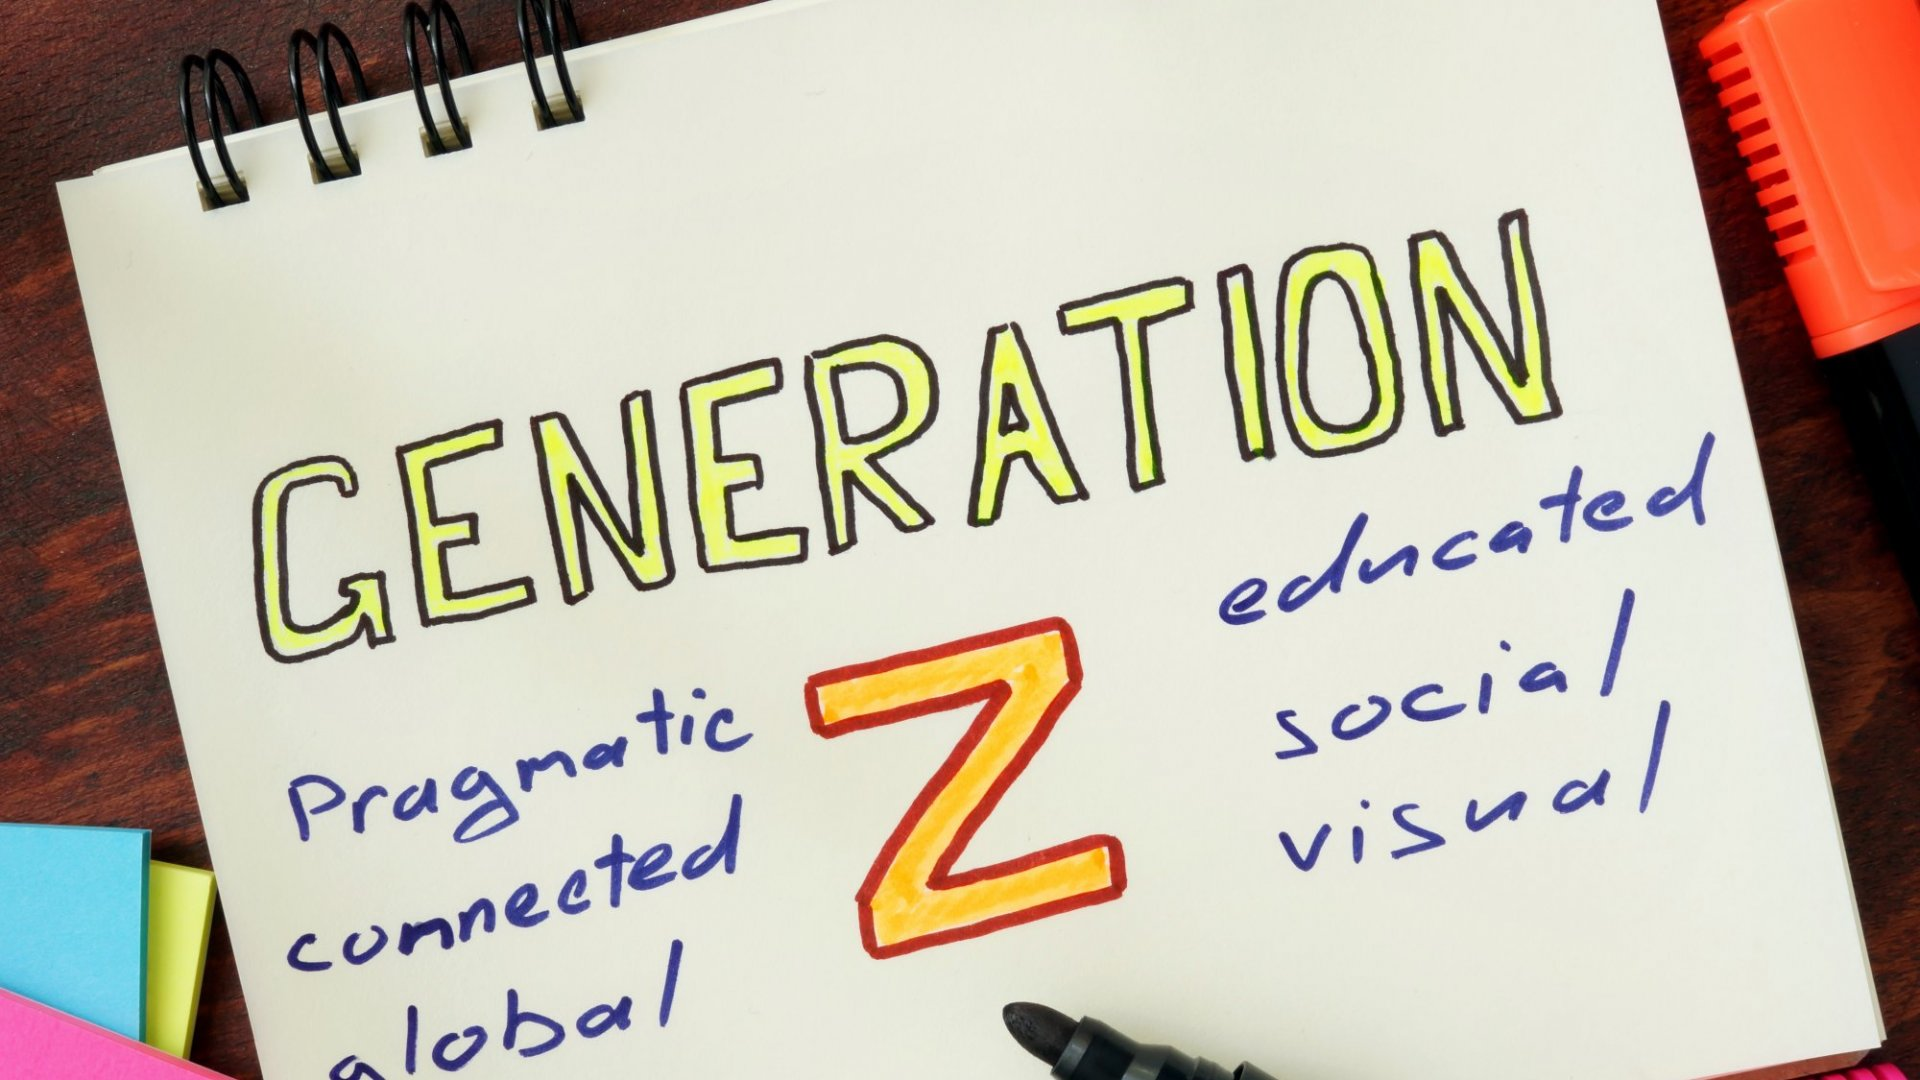 <b>Millennials Are Old News: What Do Gen Z Workers Want?</b>